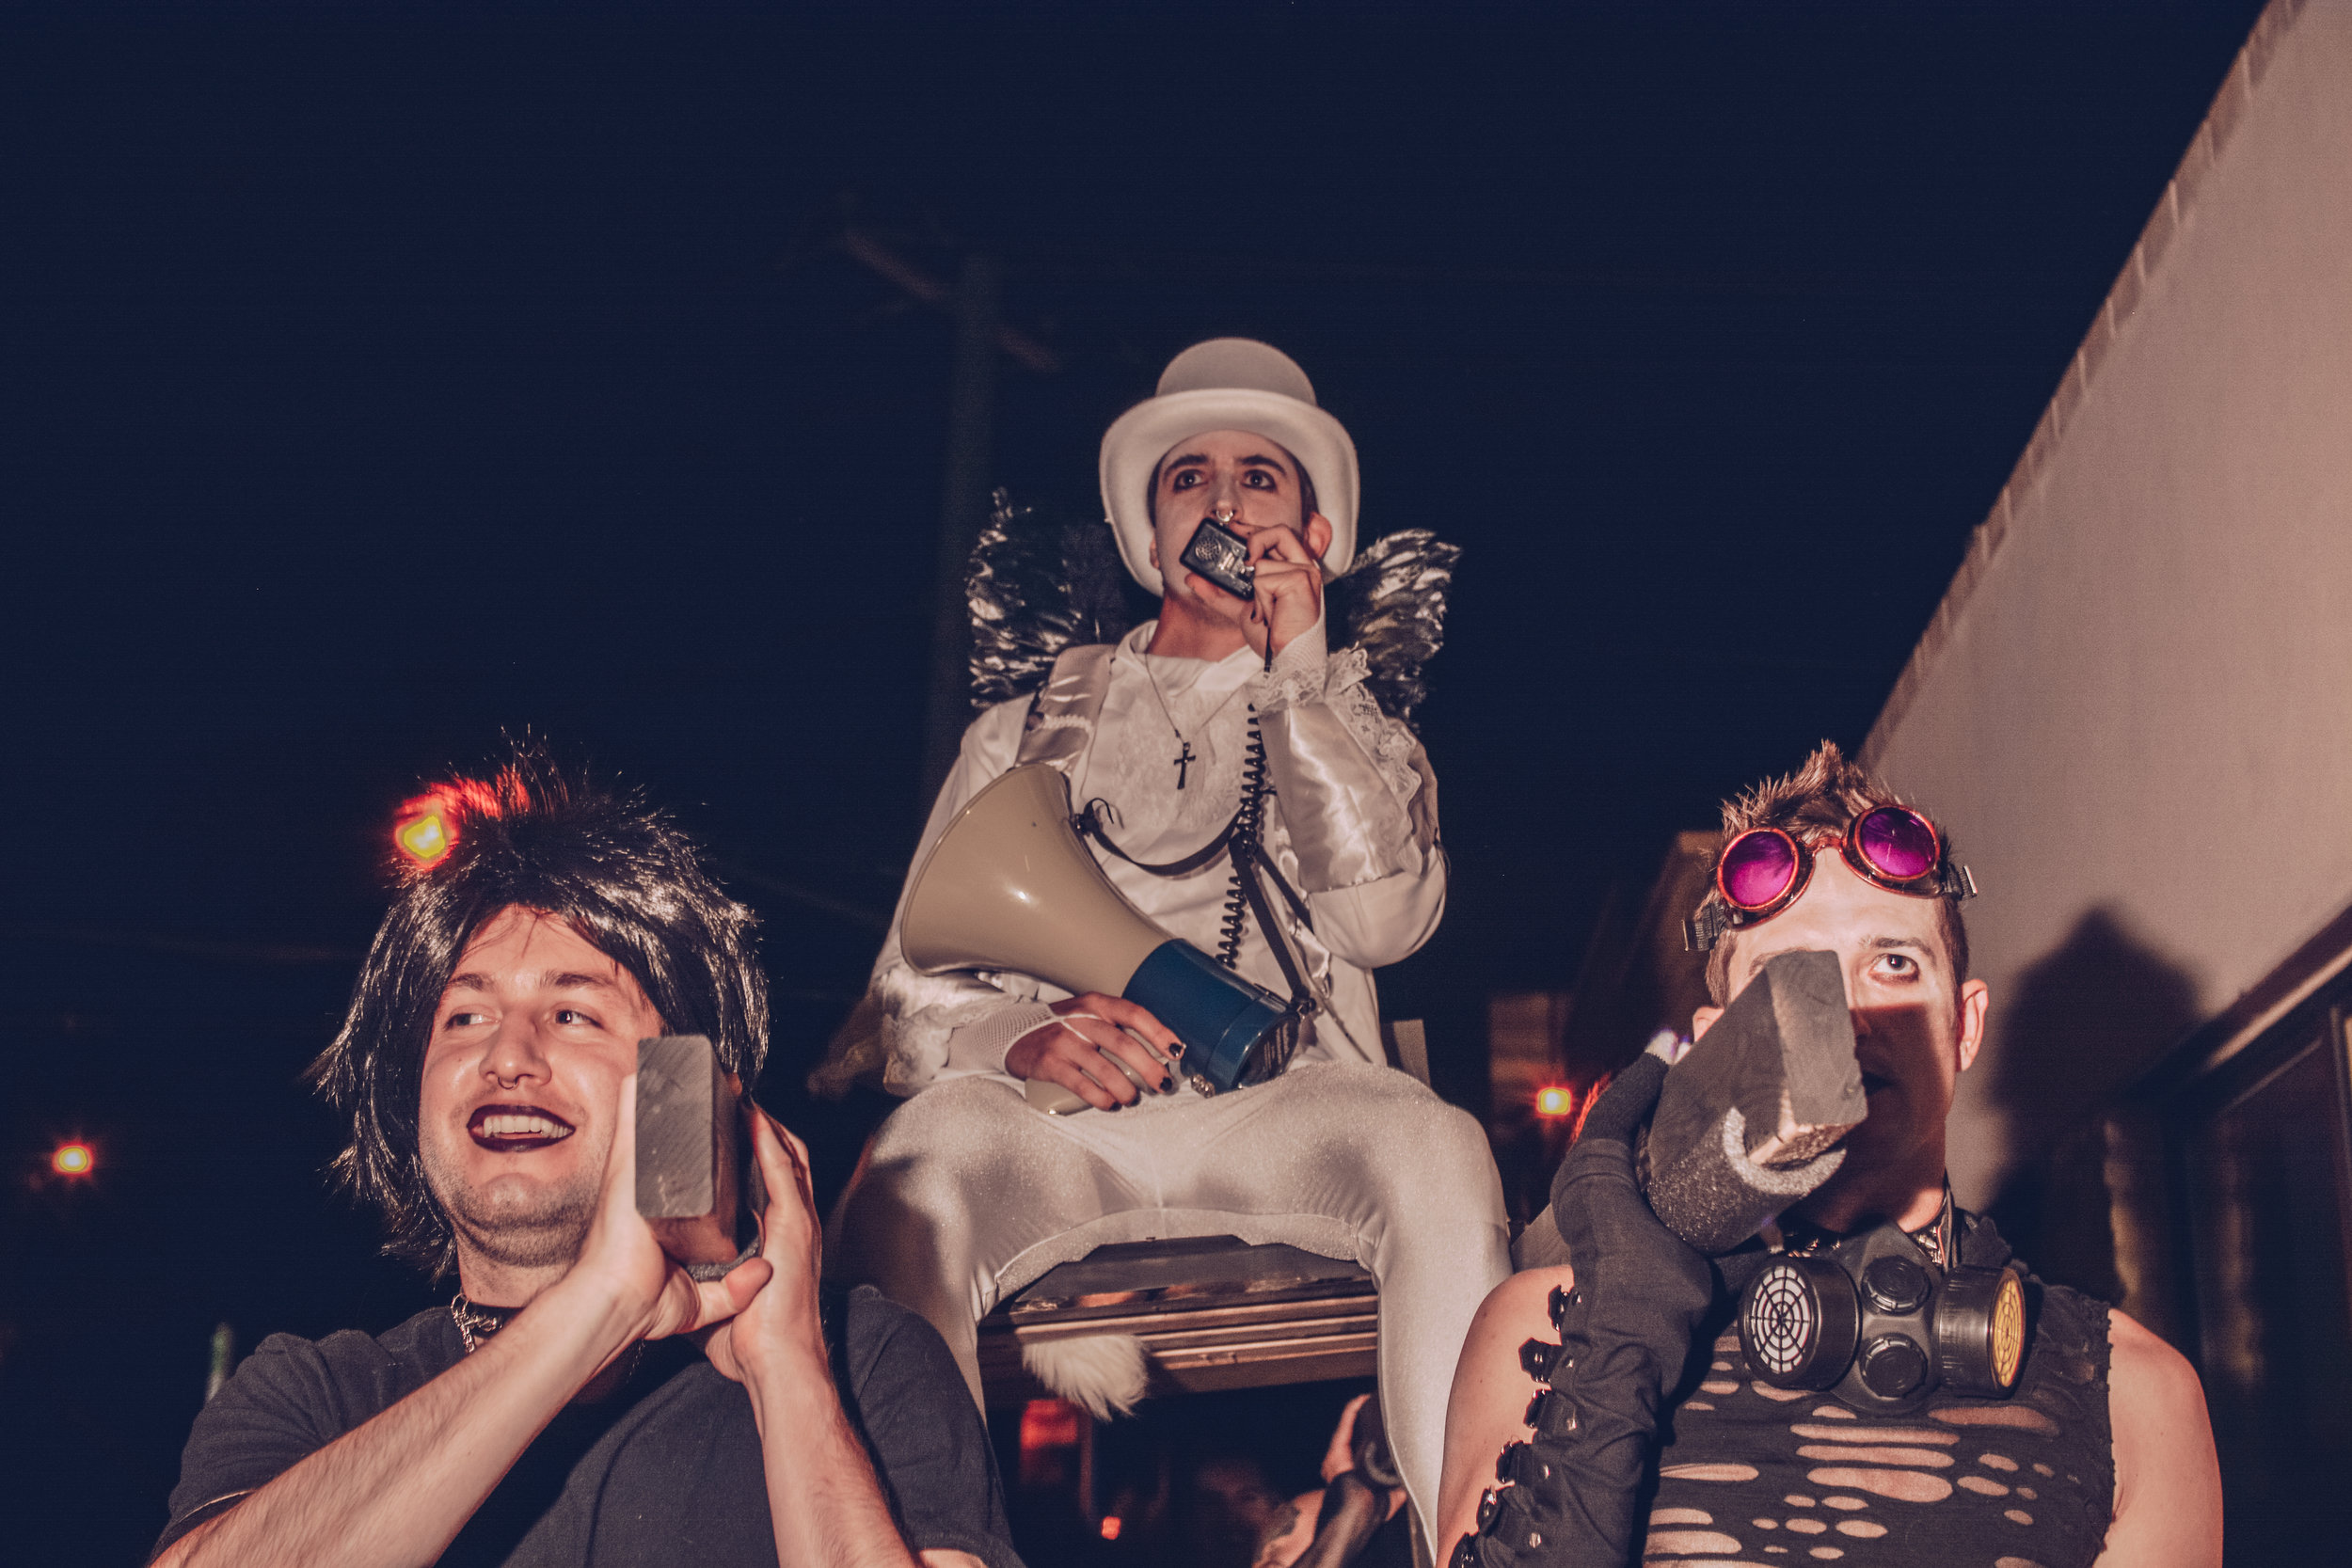 The evil groom riding atop the chariot of darkness